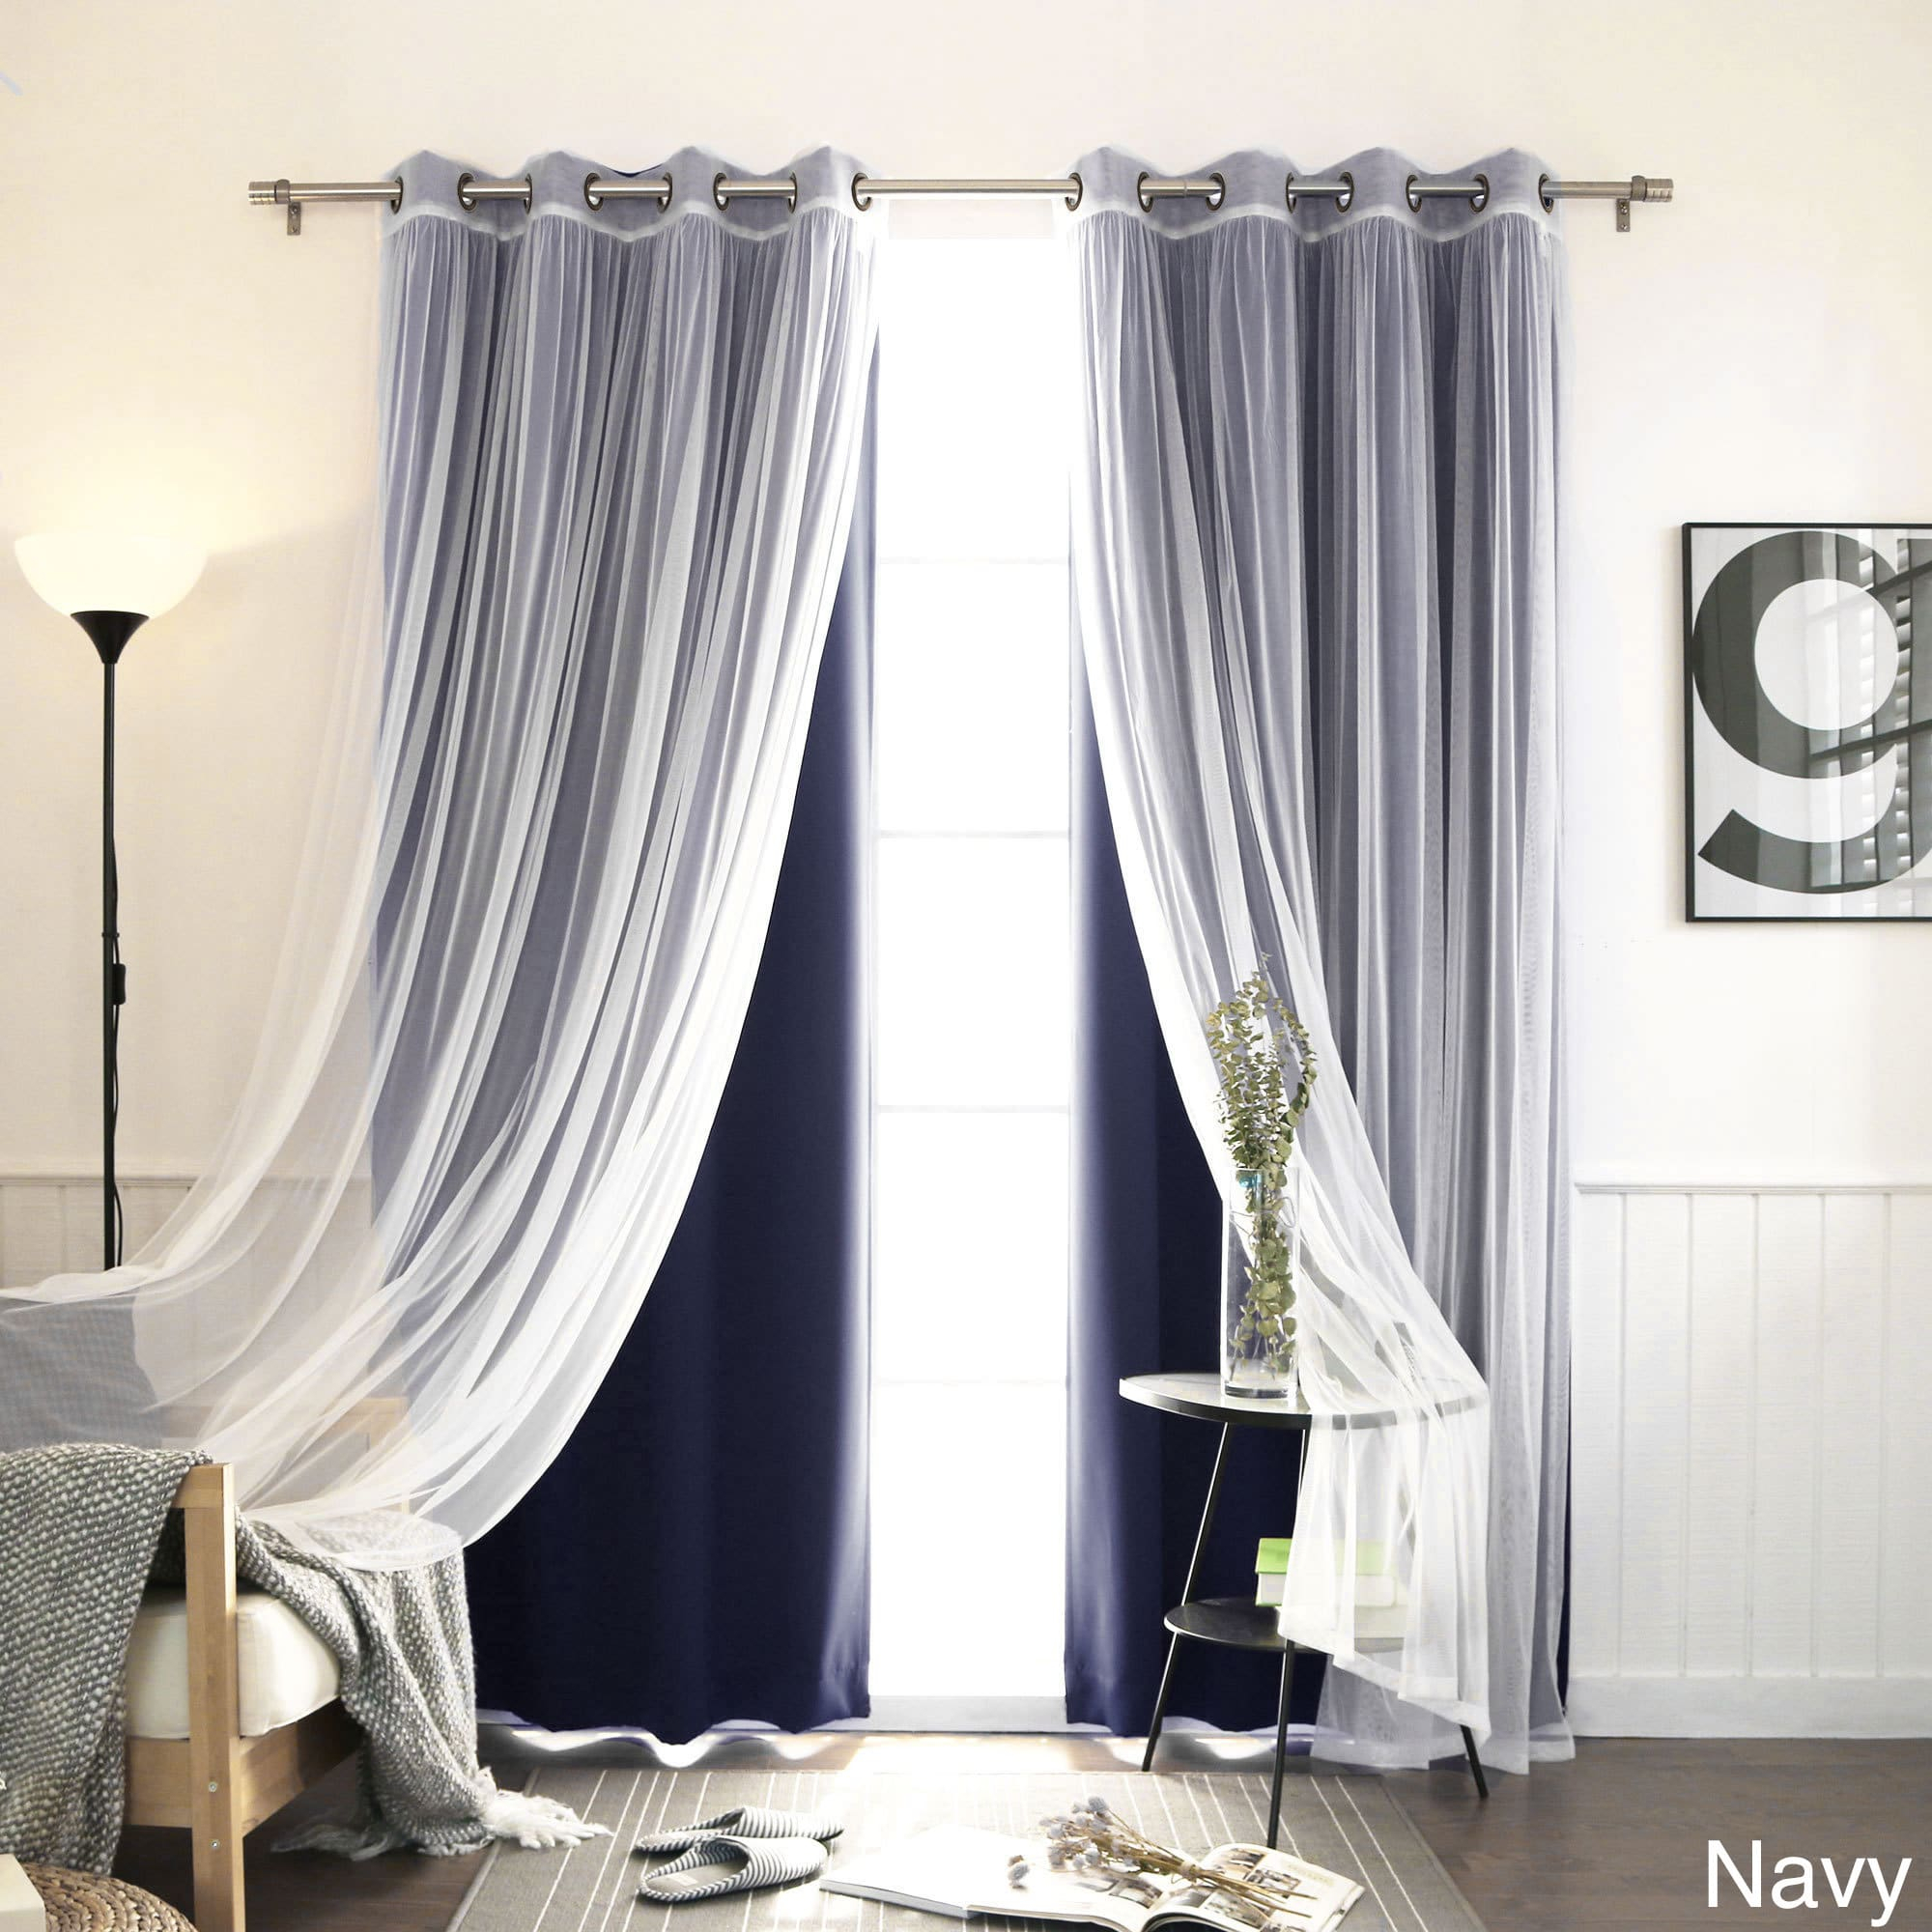 Aurora Home Mix & Match Blackout Tulle Lace Bronze Grommet 4 Pertaining To Mix And Match Blackout Tulle Lace Sheer Curtain Panel Sets (View 7 of 20)